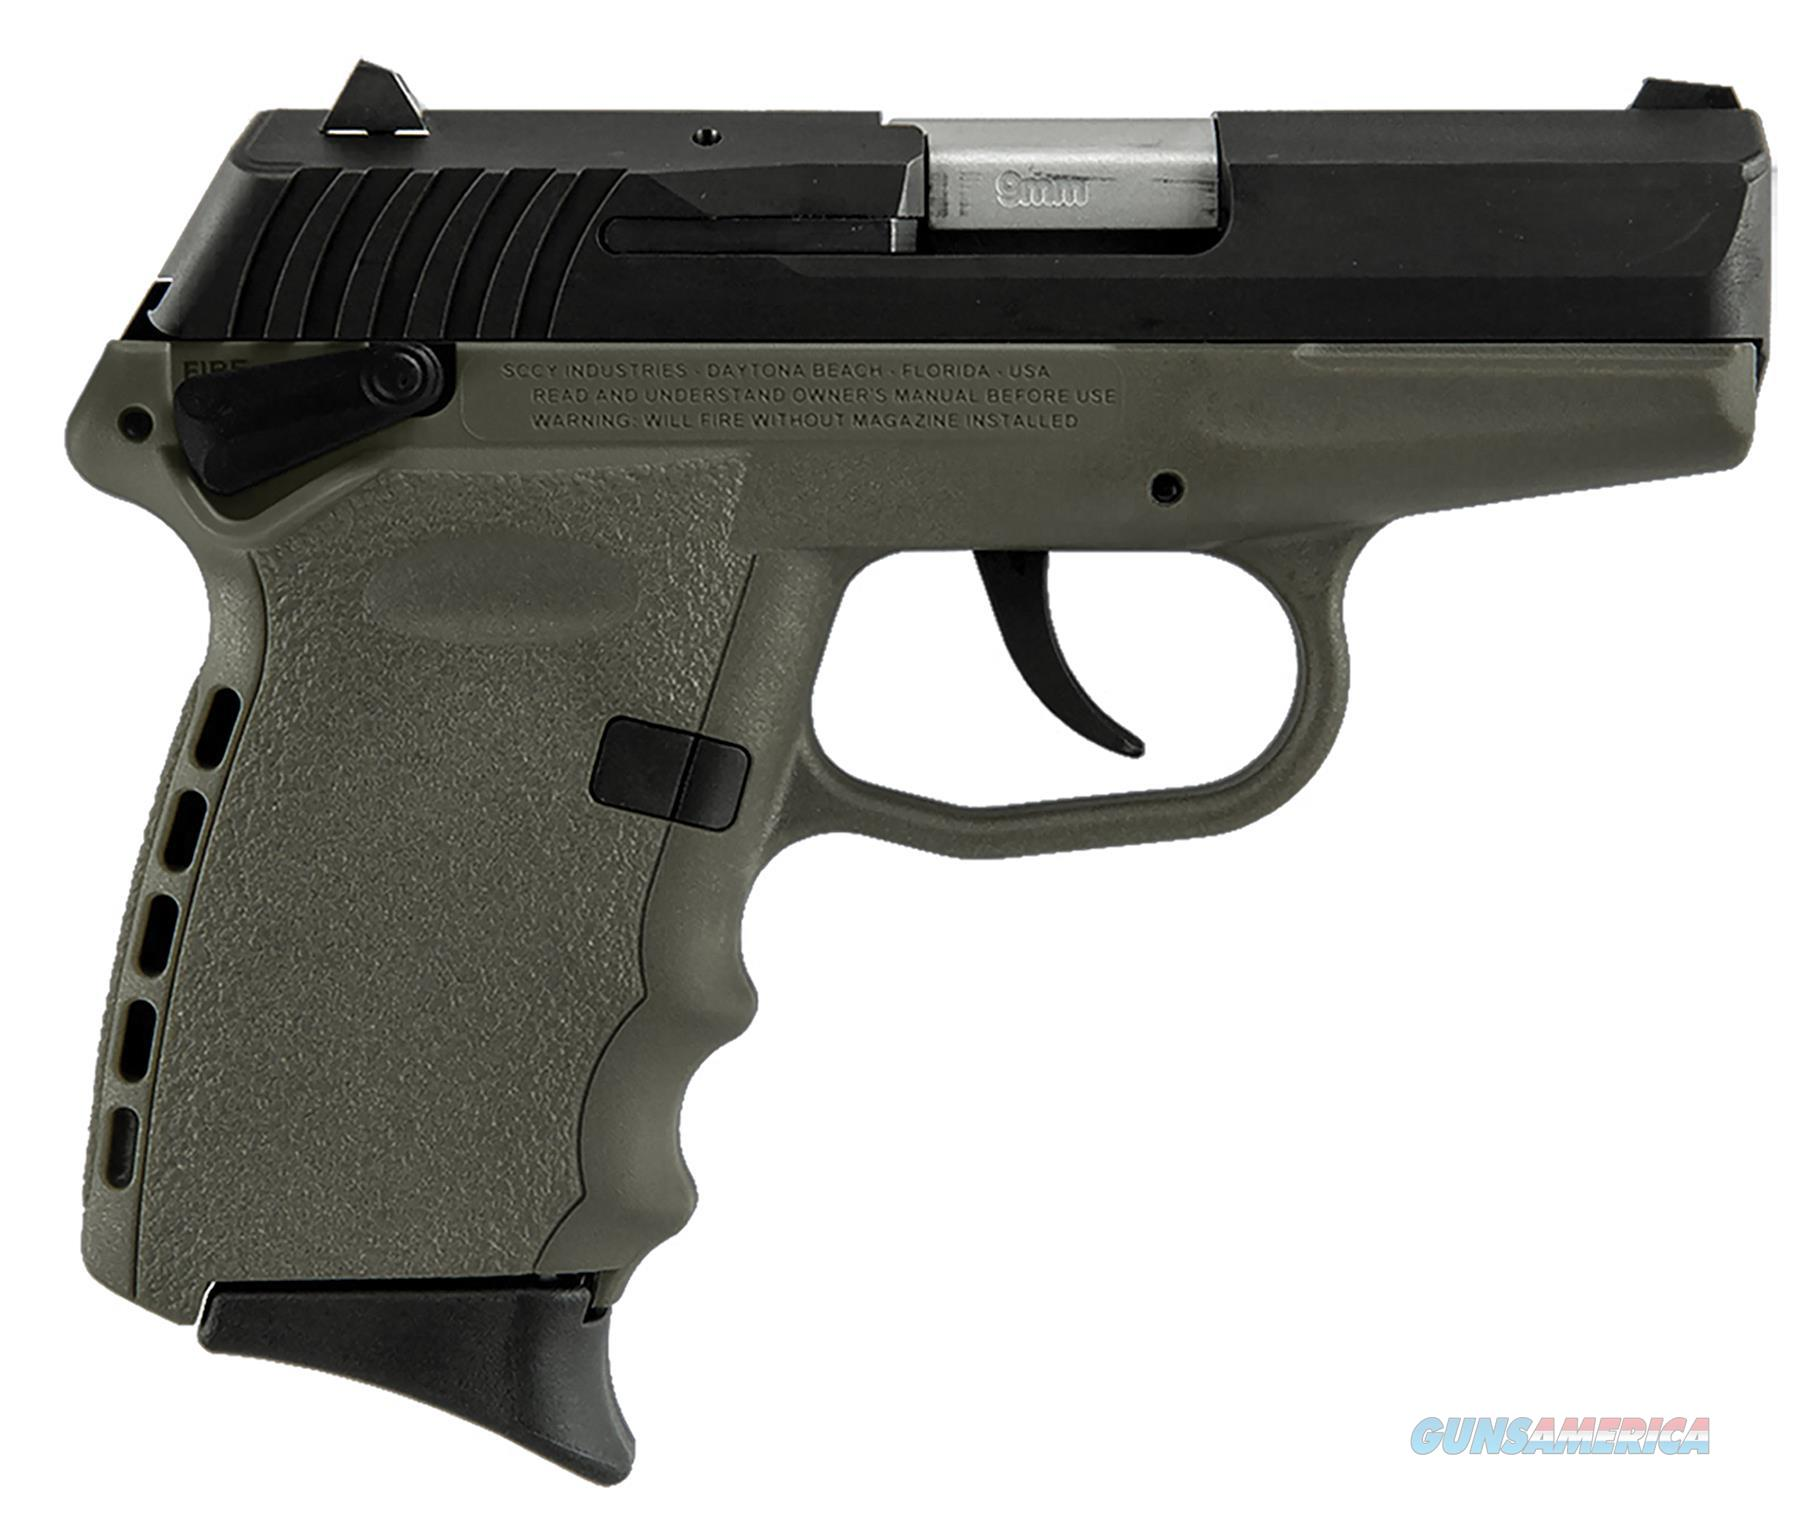 """Sccy Industries Cpx1cbde Cpx-1 Double 9Mm 3.1"""" 10+1 Flat Dark Earth Polymer Grip/Frame Grip Black Nitride Stainless Steel CPX1-CBDE  Guns > Pistols > S Misc Pistols"""